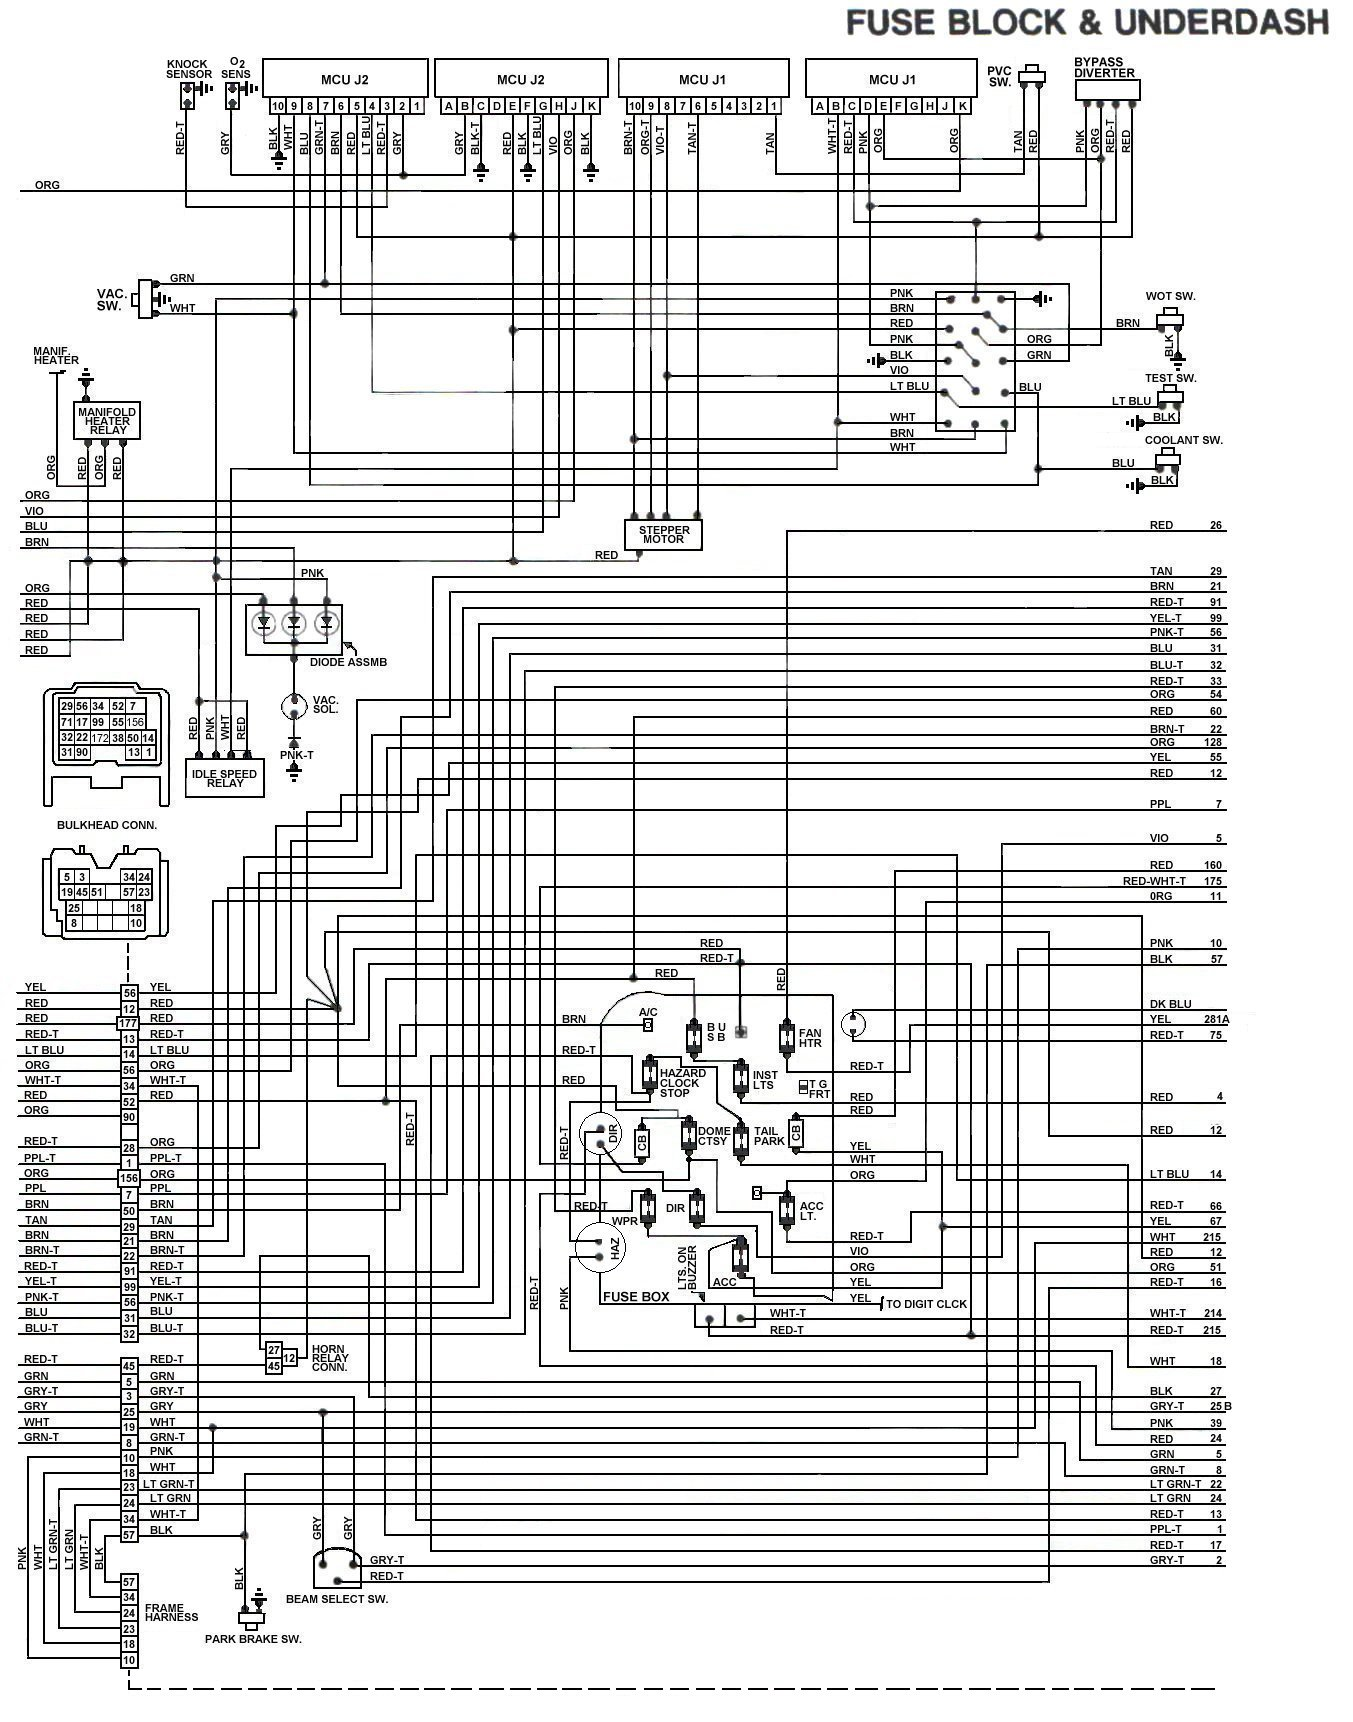 83_FSJ_WiringDiagram_FuseBlock Underdash tom 'oljeep' collins fsj wiring page  at n-0.co